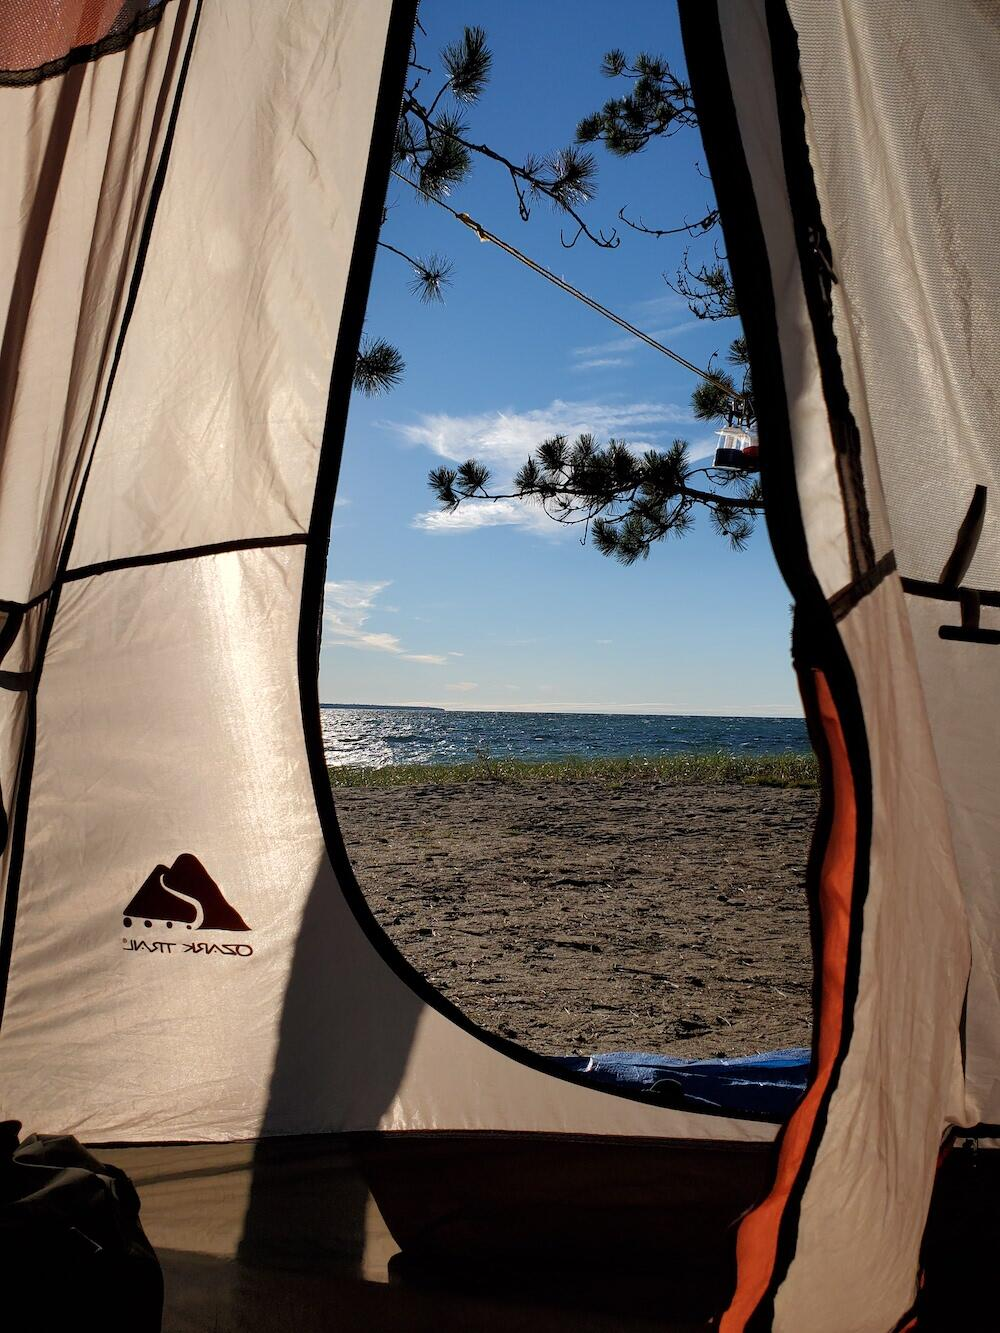 View from inside tent of beach and lake